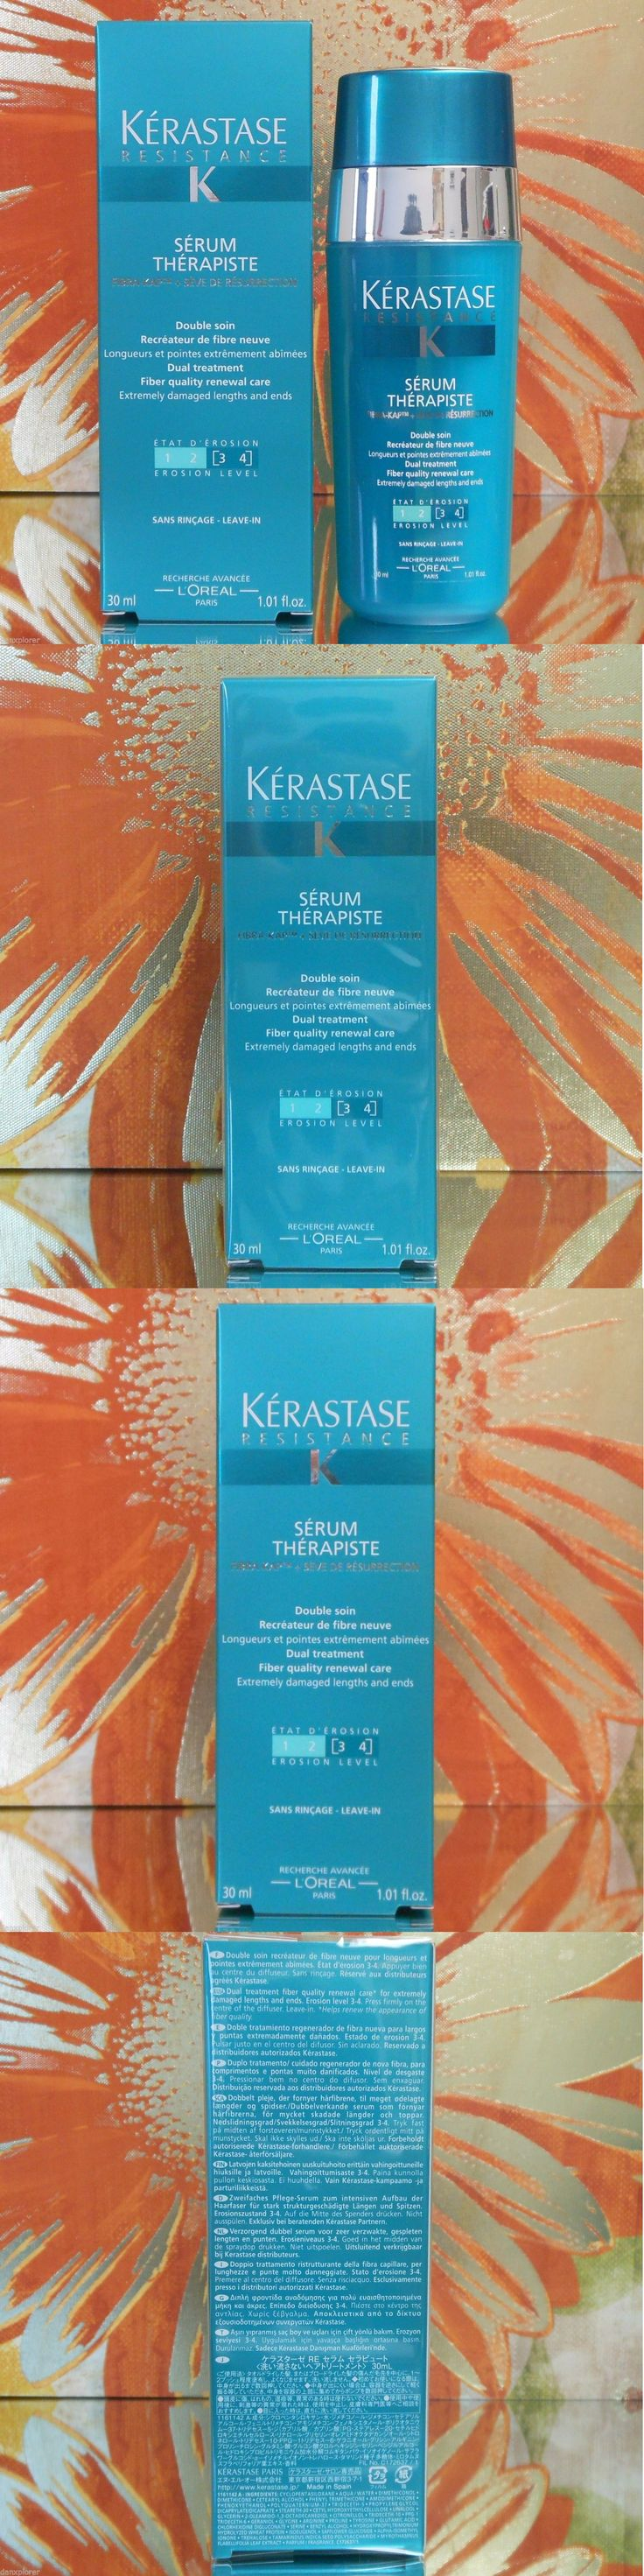 Relaxers and Straightening Prod: Kerastase Serum Therapiste 30Ml Or 1.01Oz, New In Box! Freshest Ebay,Quick Ship -> BUY IT NOW ONLY: $31.9 on eBay!